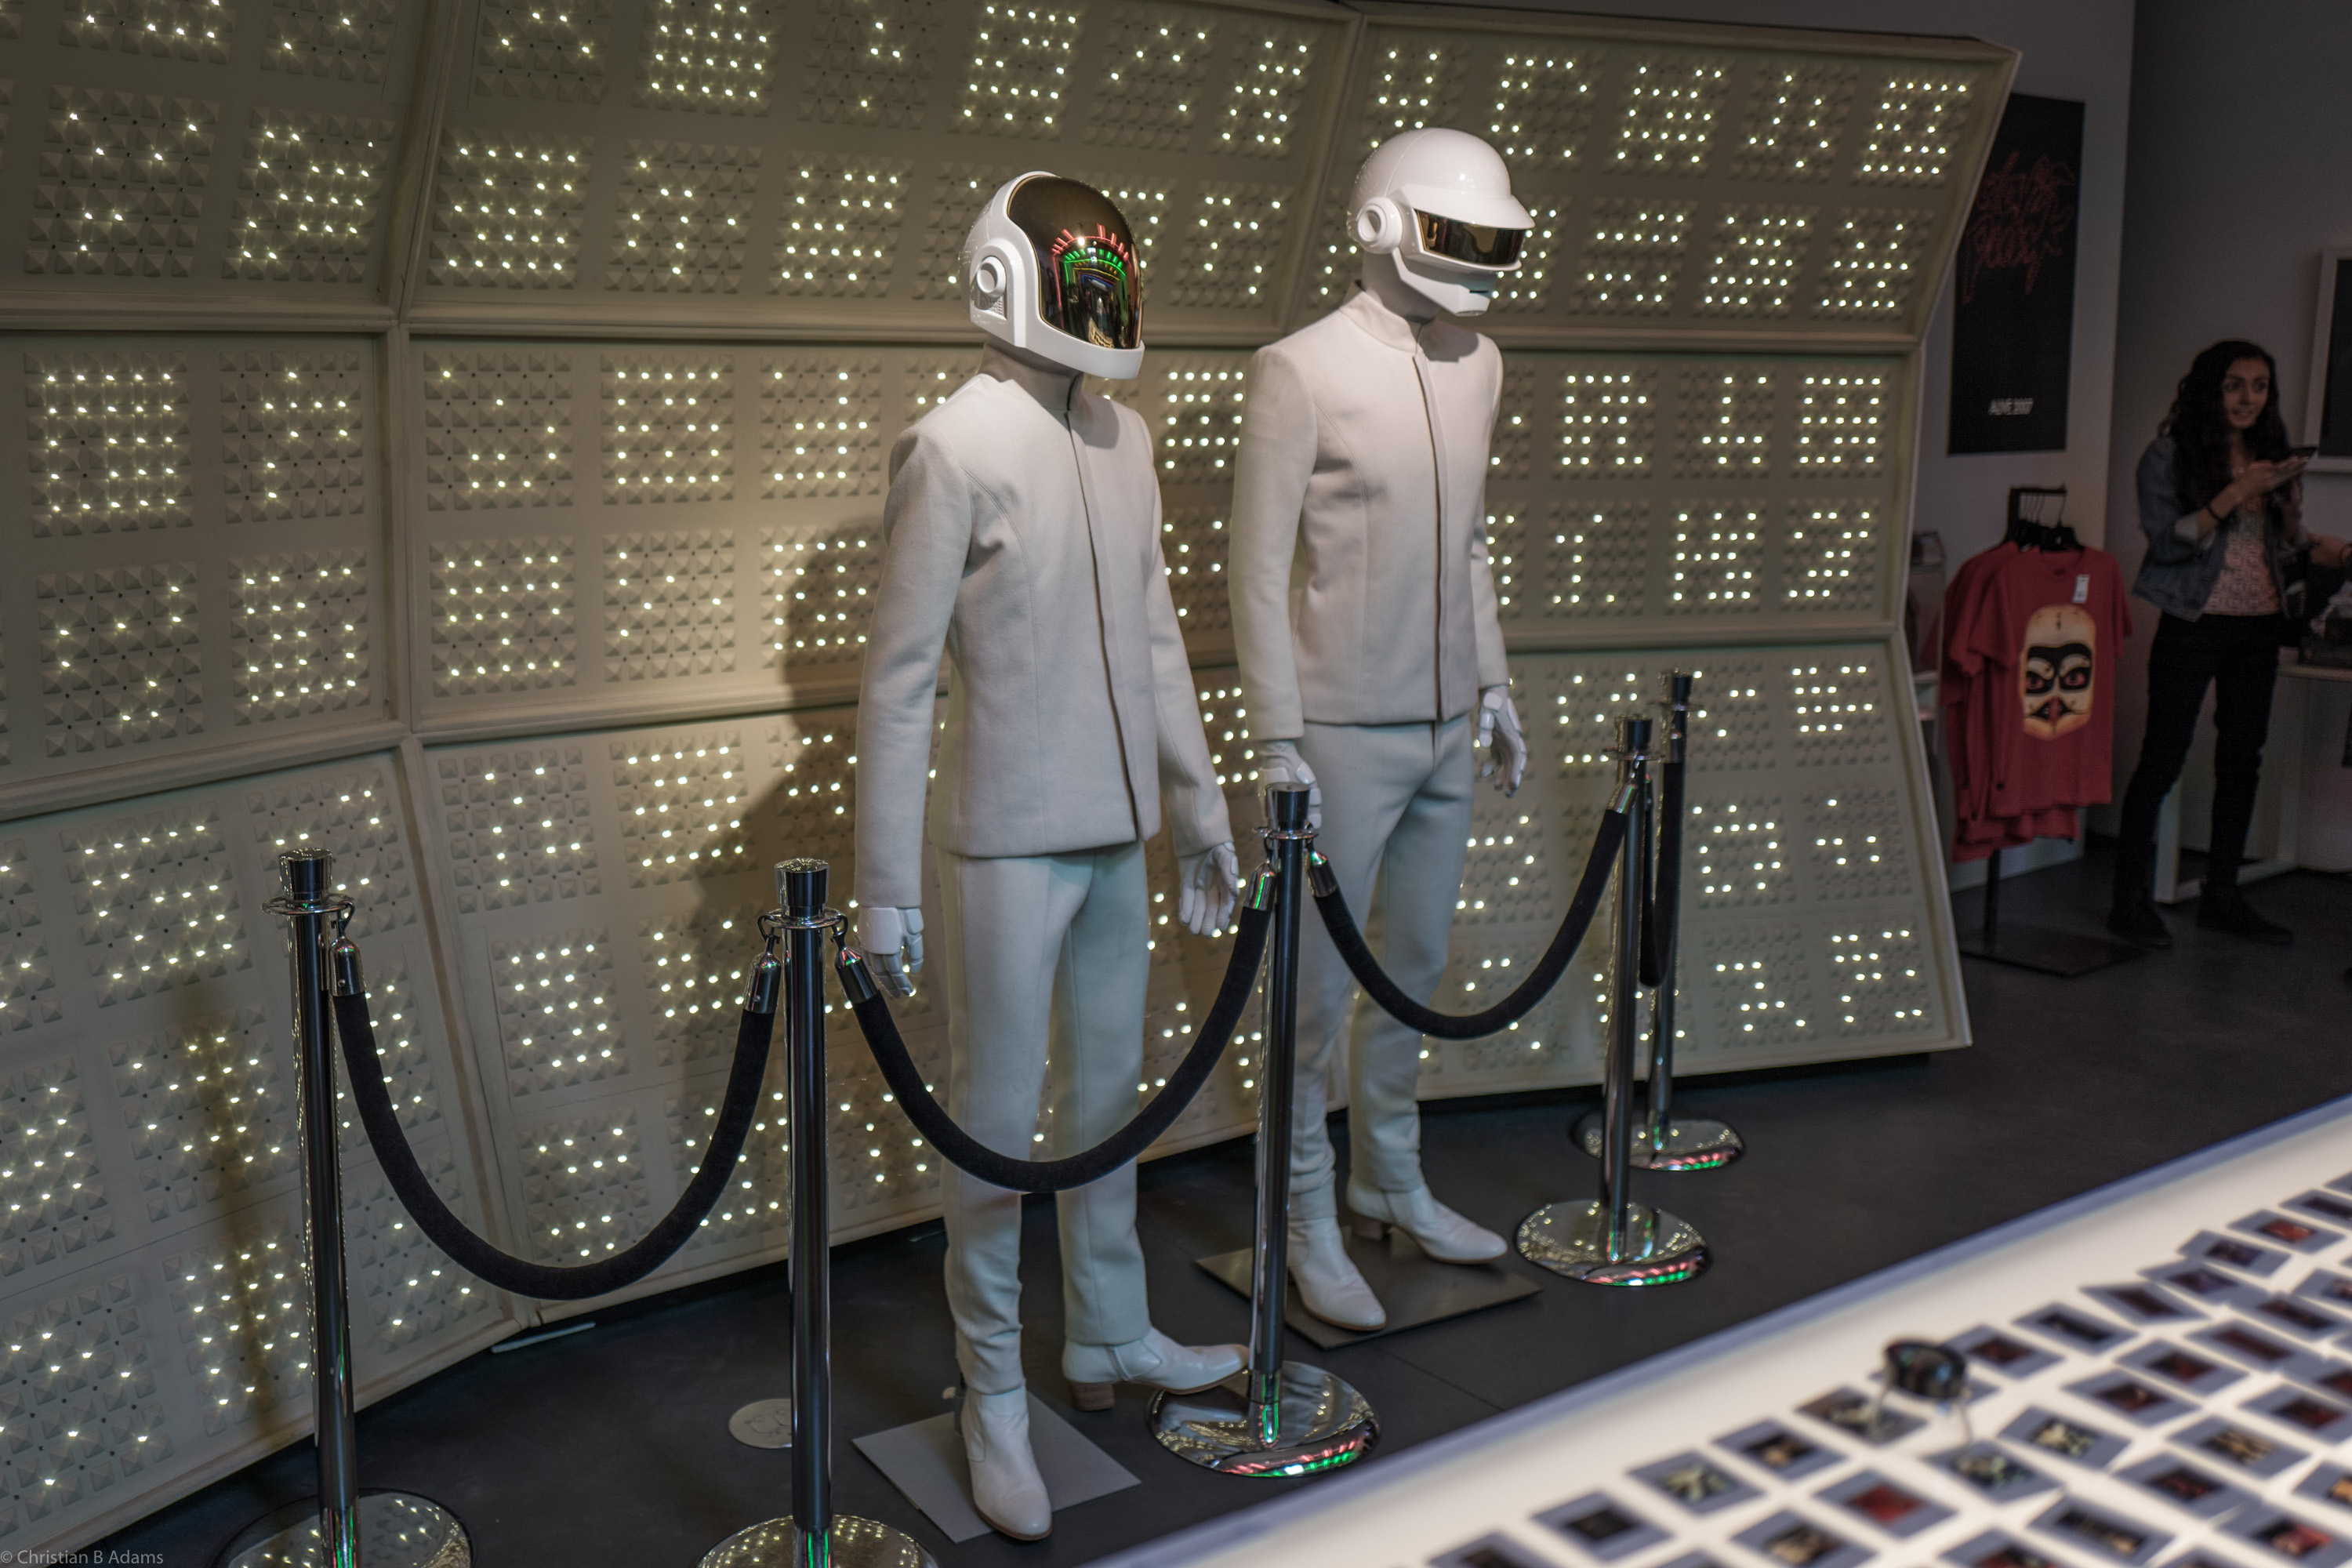 The robots (aka Thomas Bangalter and Guy-Manuel de Homem-Christo) who accepted the Grammy win for Random Access Memories in 2014, on display at the Daft Punk Pop Up at Maxfield Gallery Los Angeles in February of 2017.